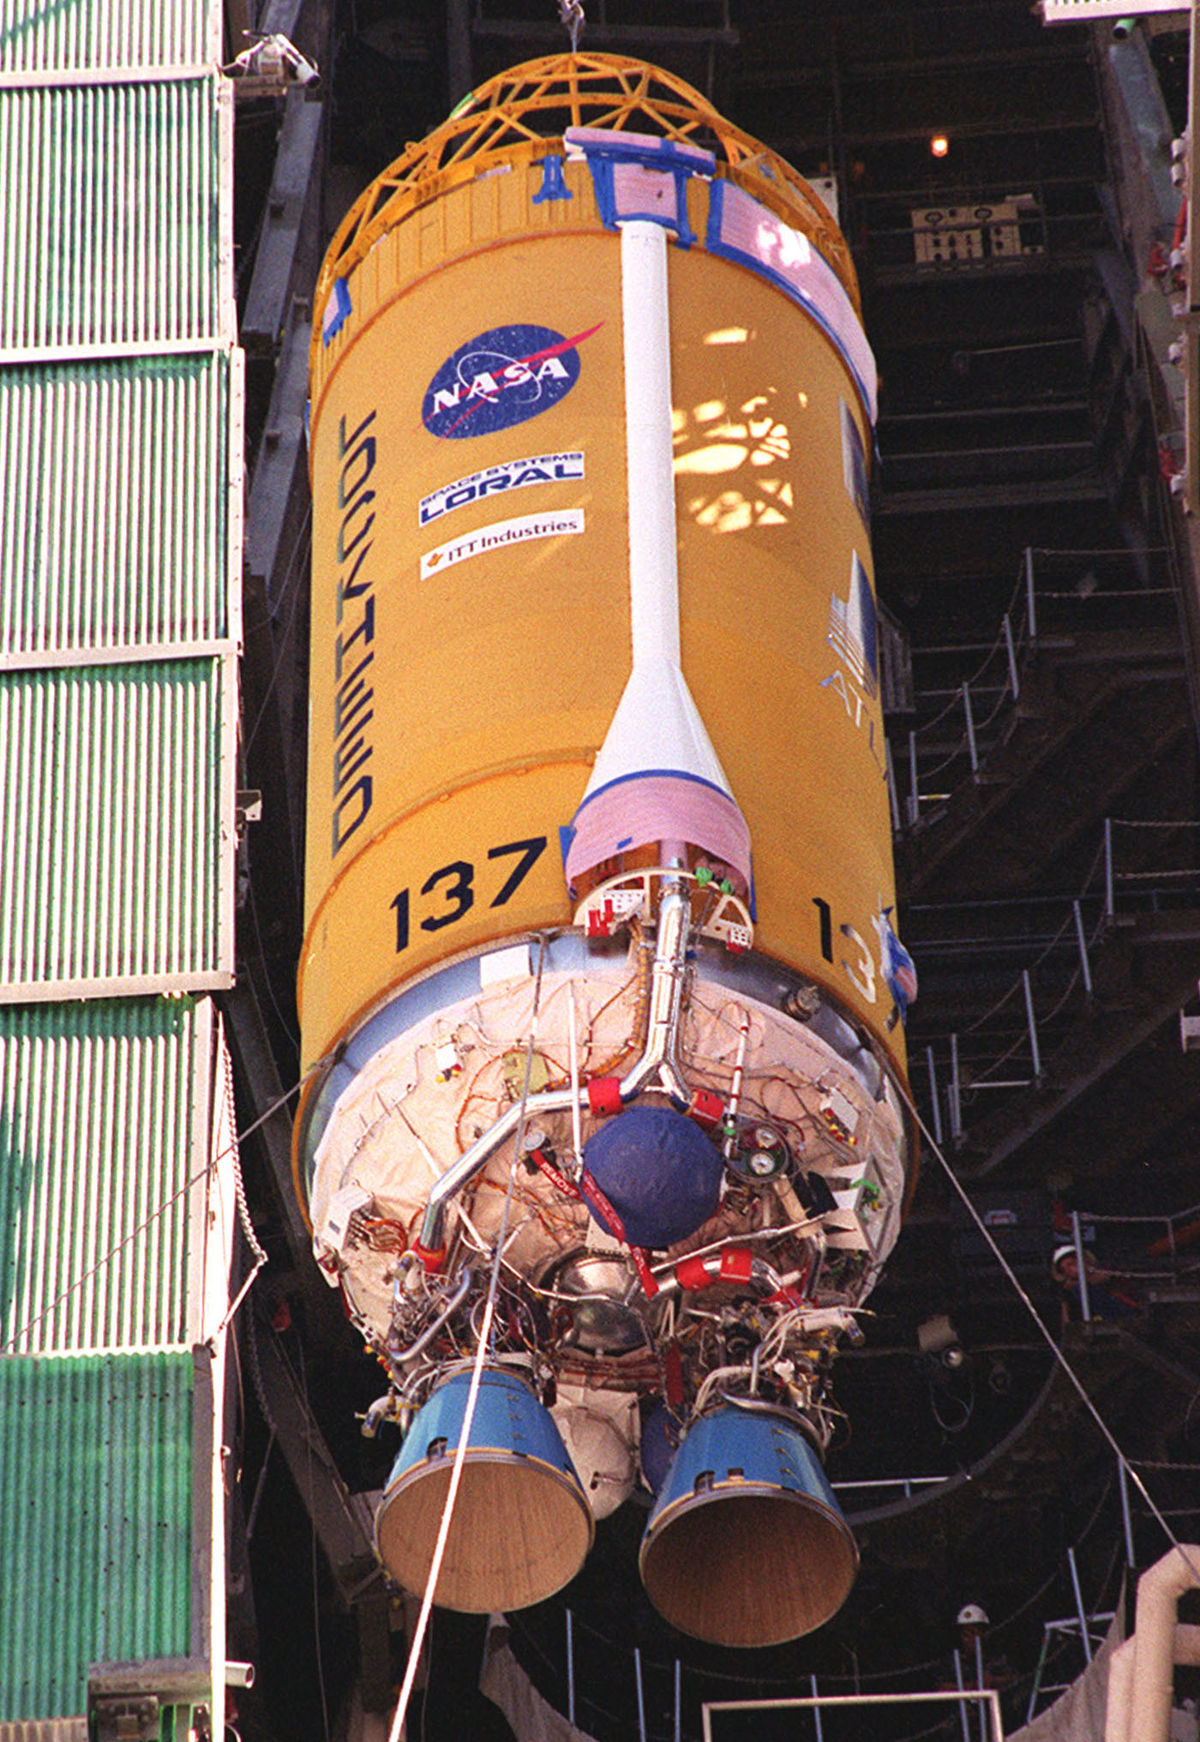 space shuttle upper stage - photo #36